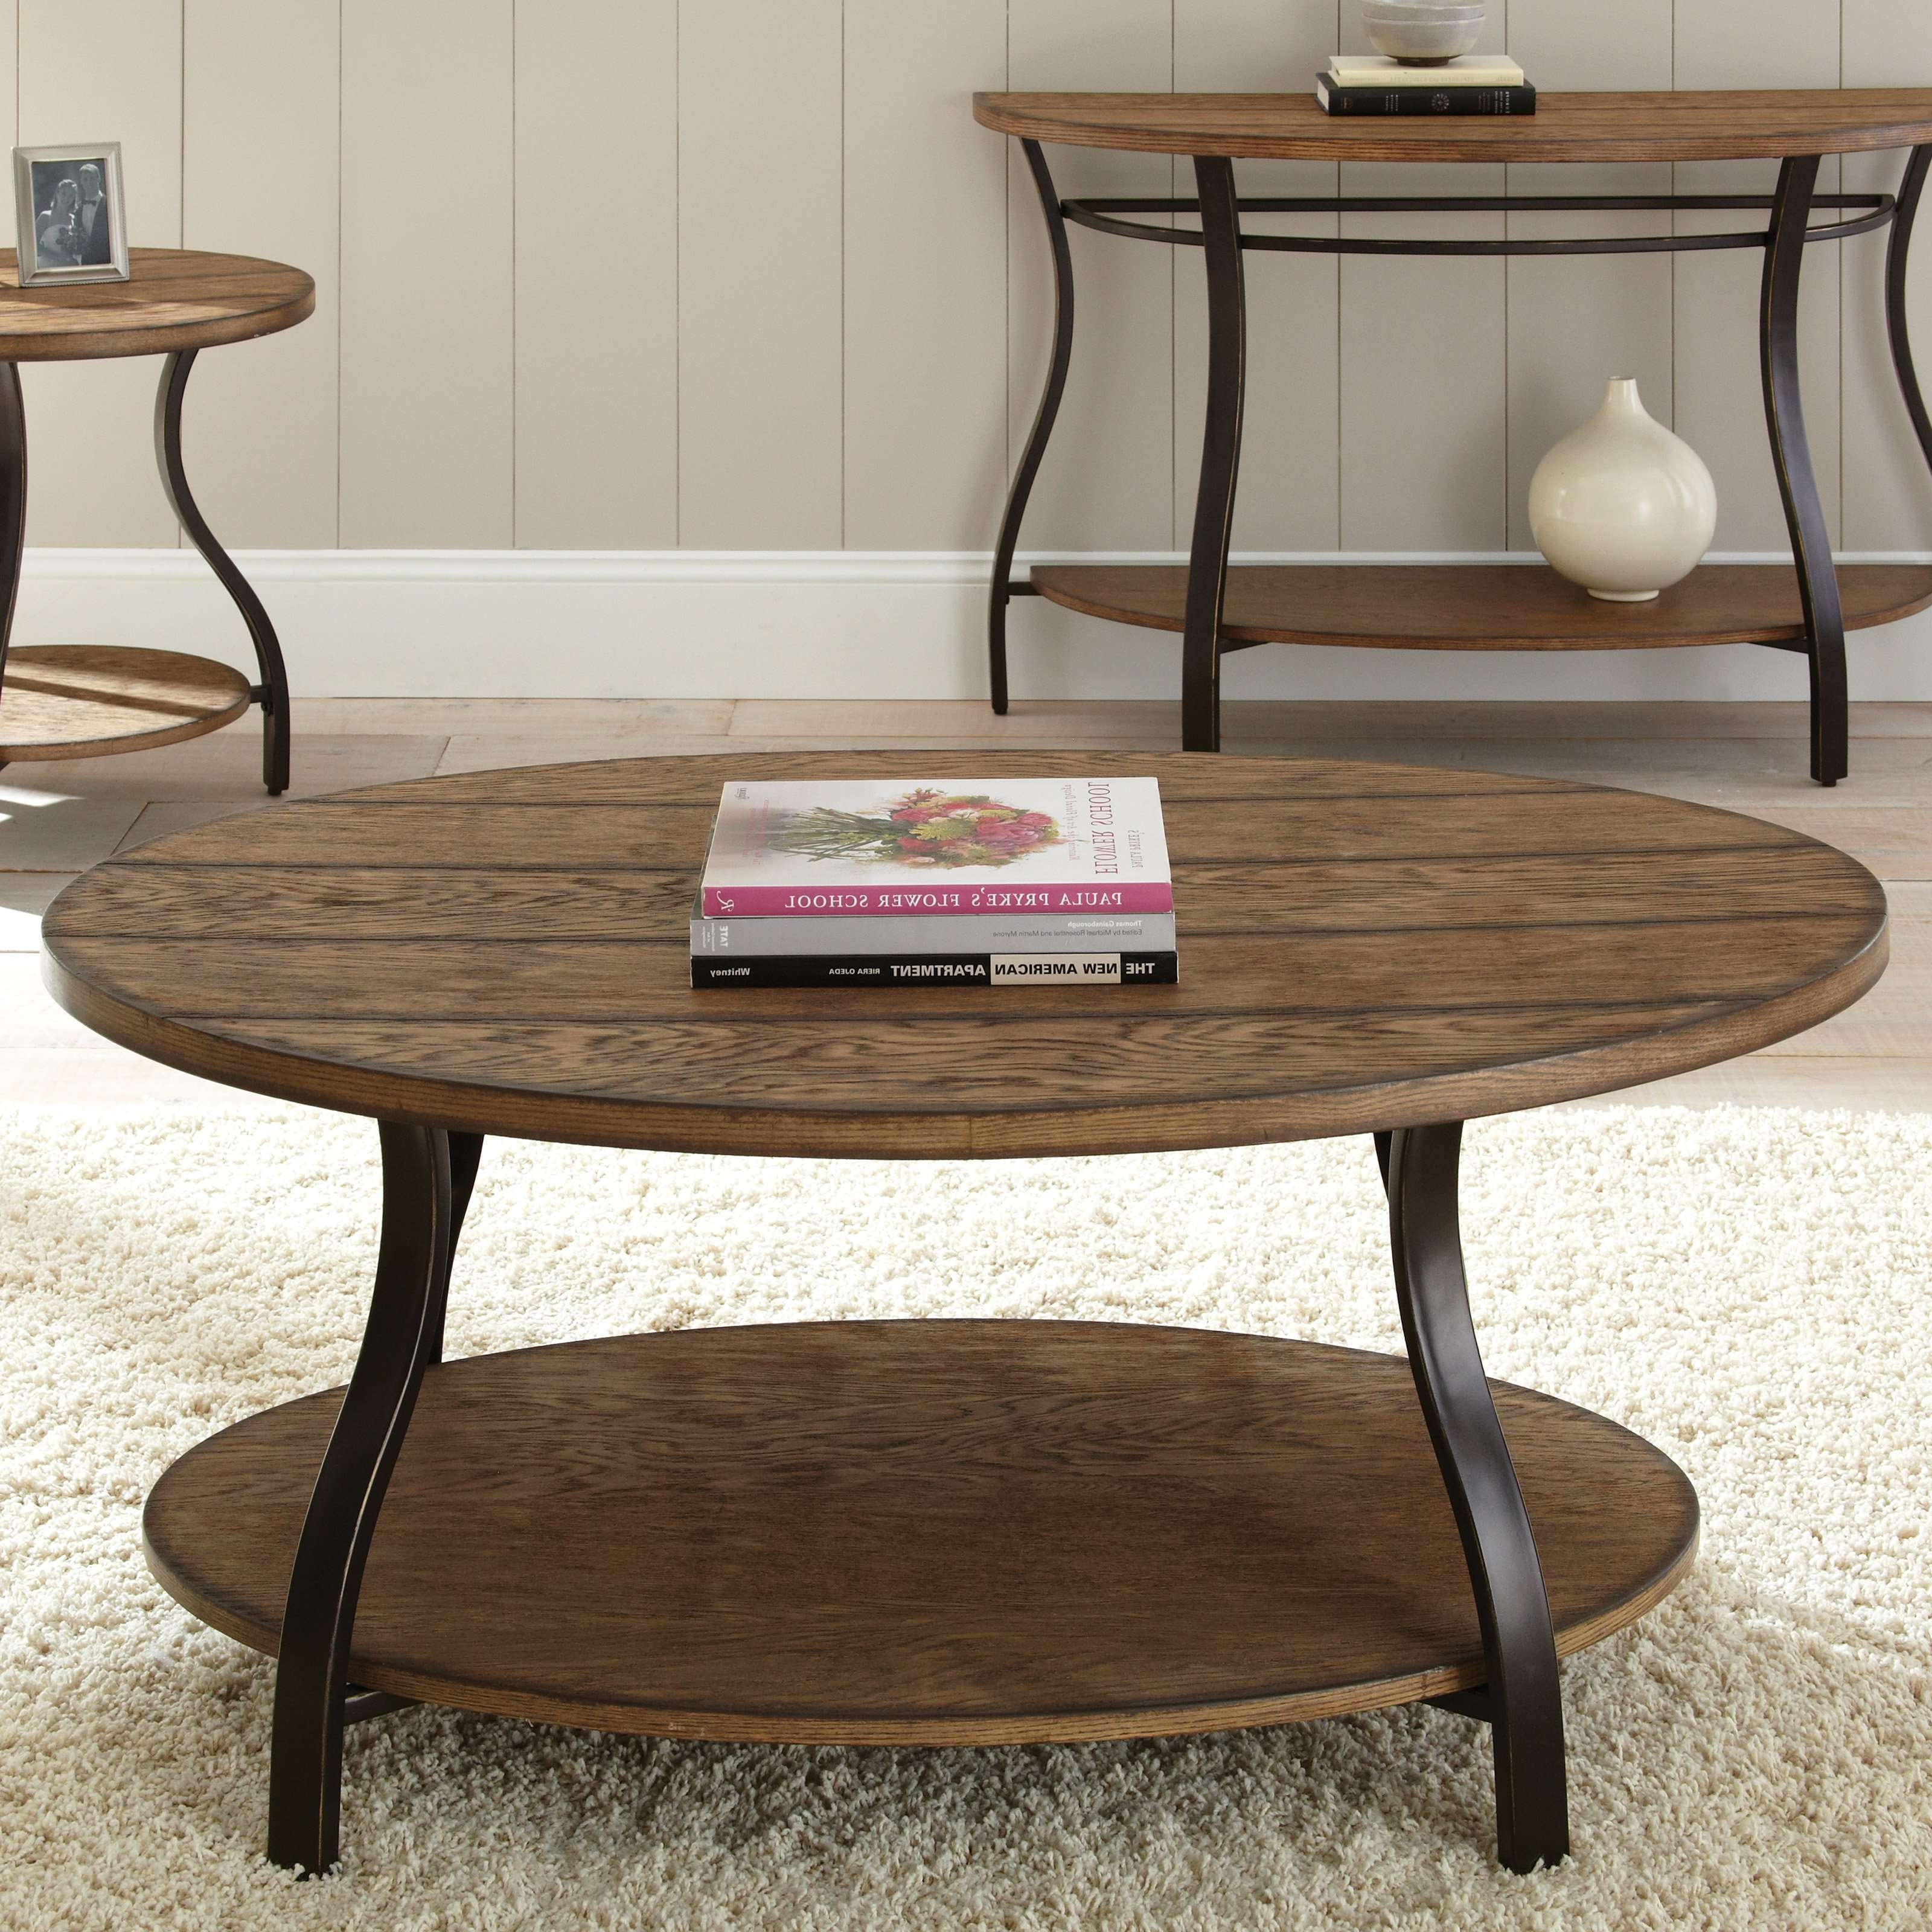 Coffee Table : Fabulous Rustic Round Coffee Table Large Round Pertaining To Most Current Oval Wood Coffee Tables (View 8 of 20)